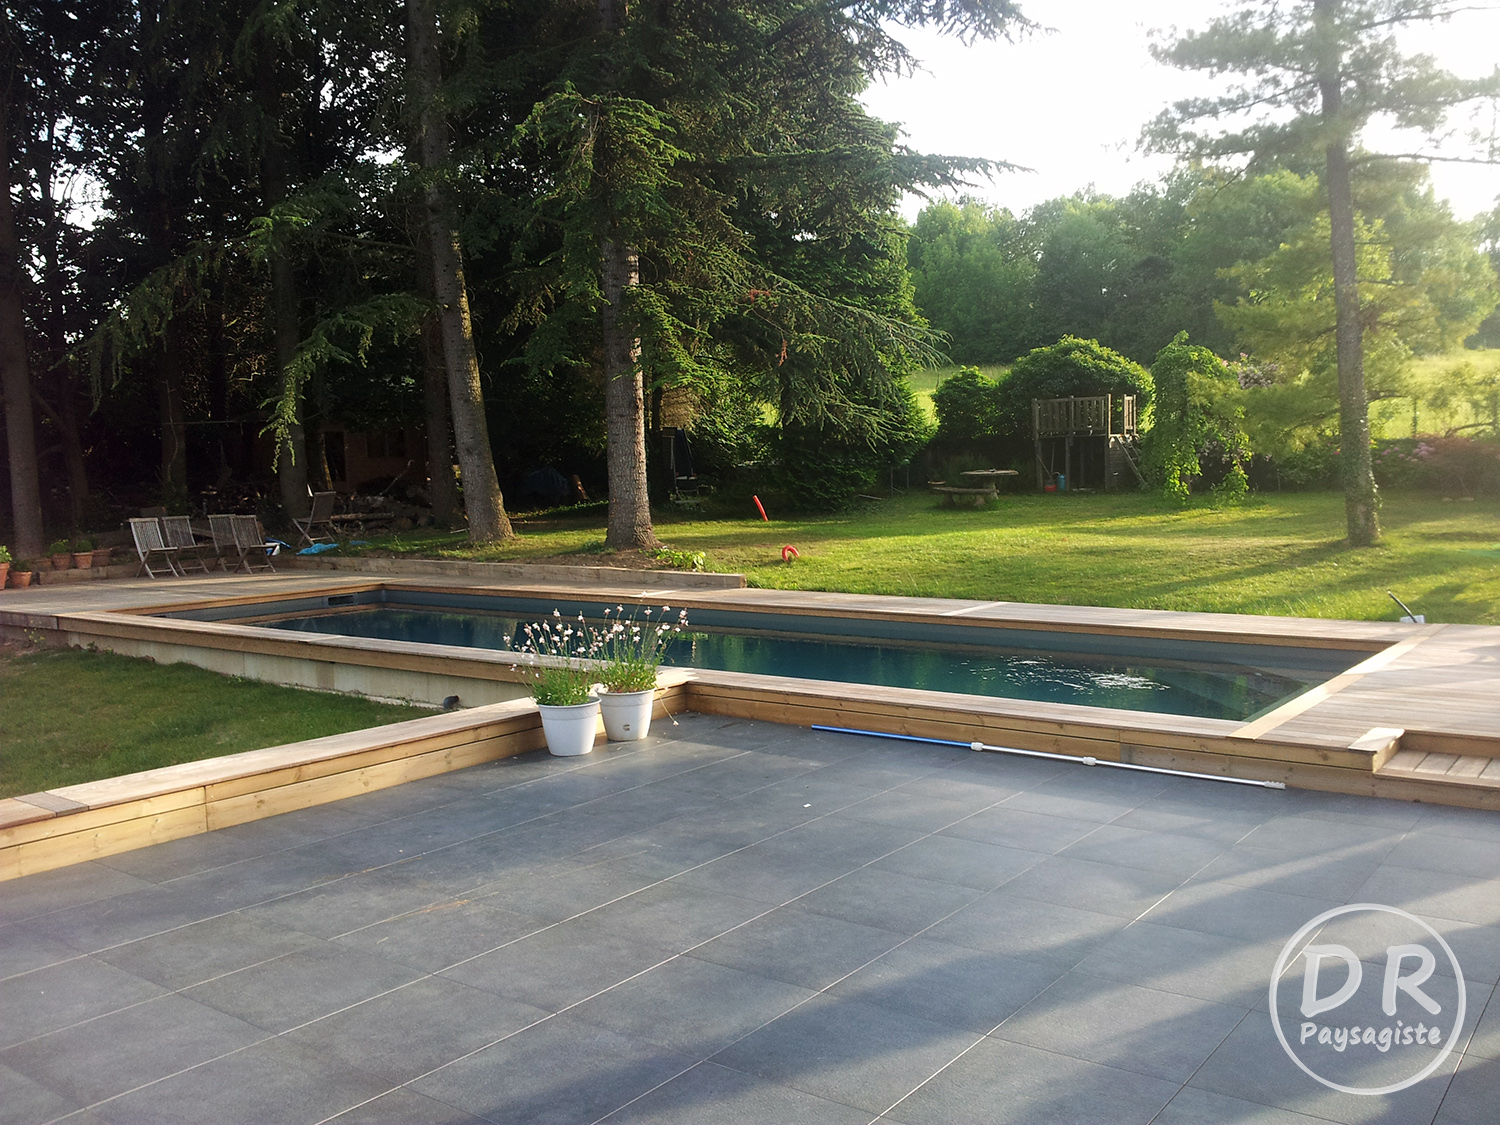 Terrasse Bois Carrelage Foret David Robert Paysagiste